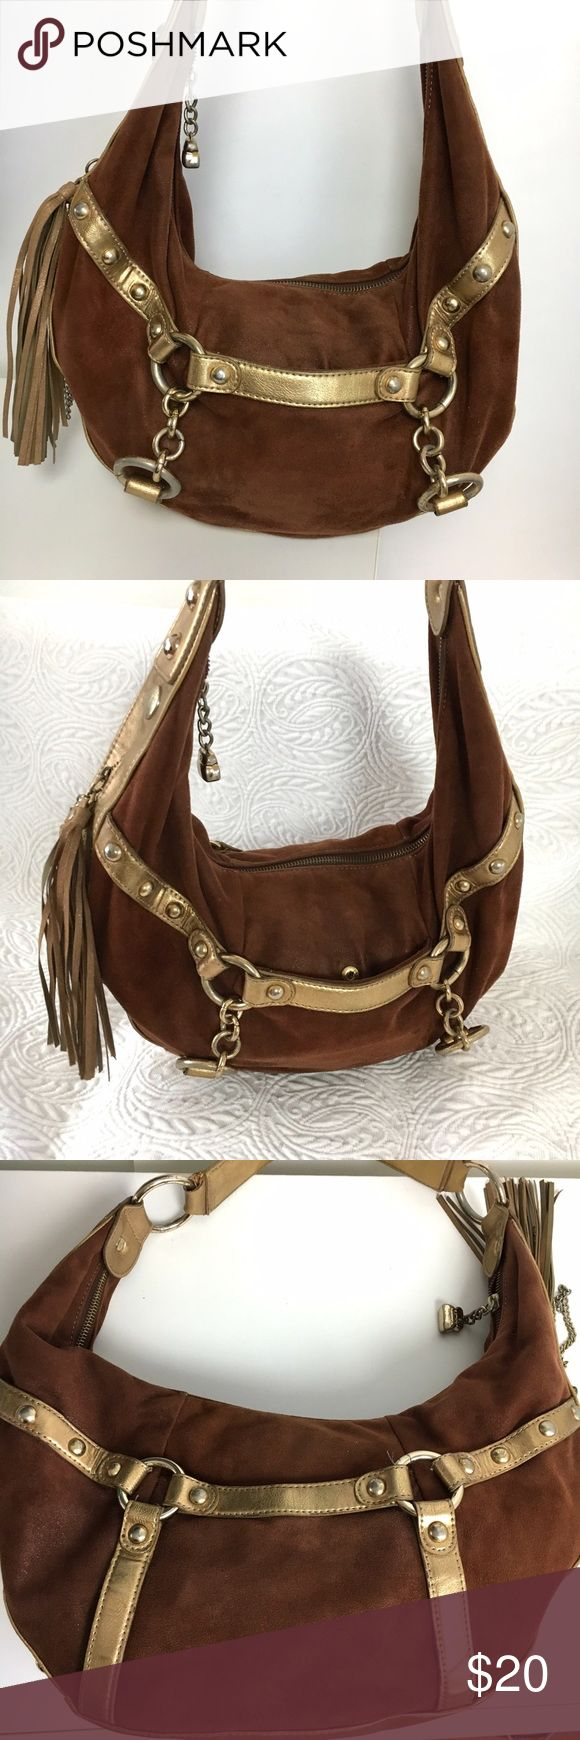 Kathy Van Zeeland Hobo Shoulder Bag Kathy Van Zeeland Hobo Boho Shoulder with zipper Fringe and Charm. Gently used some signs of wear but adds to the Boho Charm. Please ask any questions before purchase. 👍OFFERS Welcome 🚫no trades pls Kathy Van Zeeland Bags Hobos